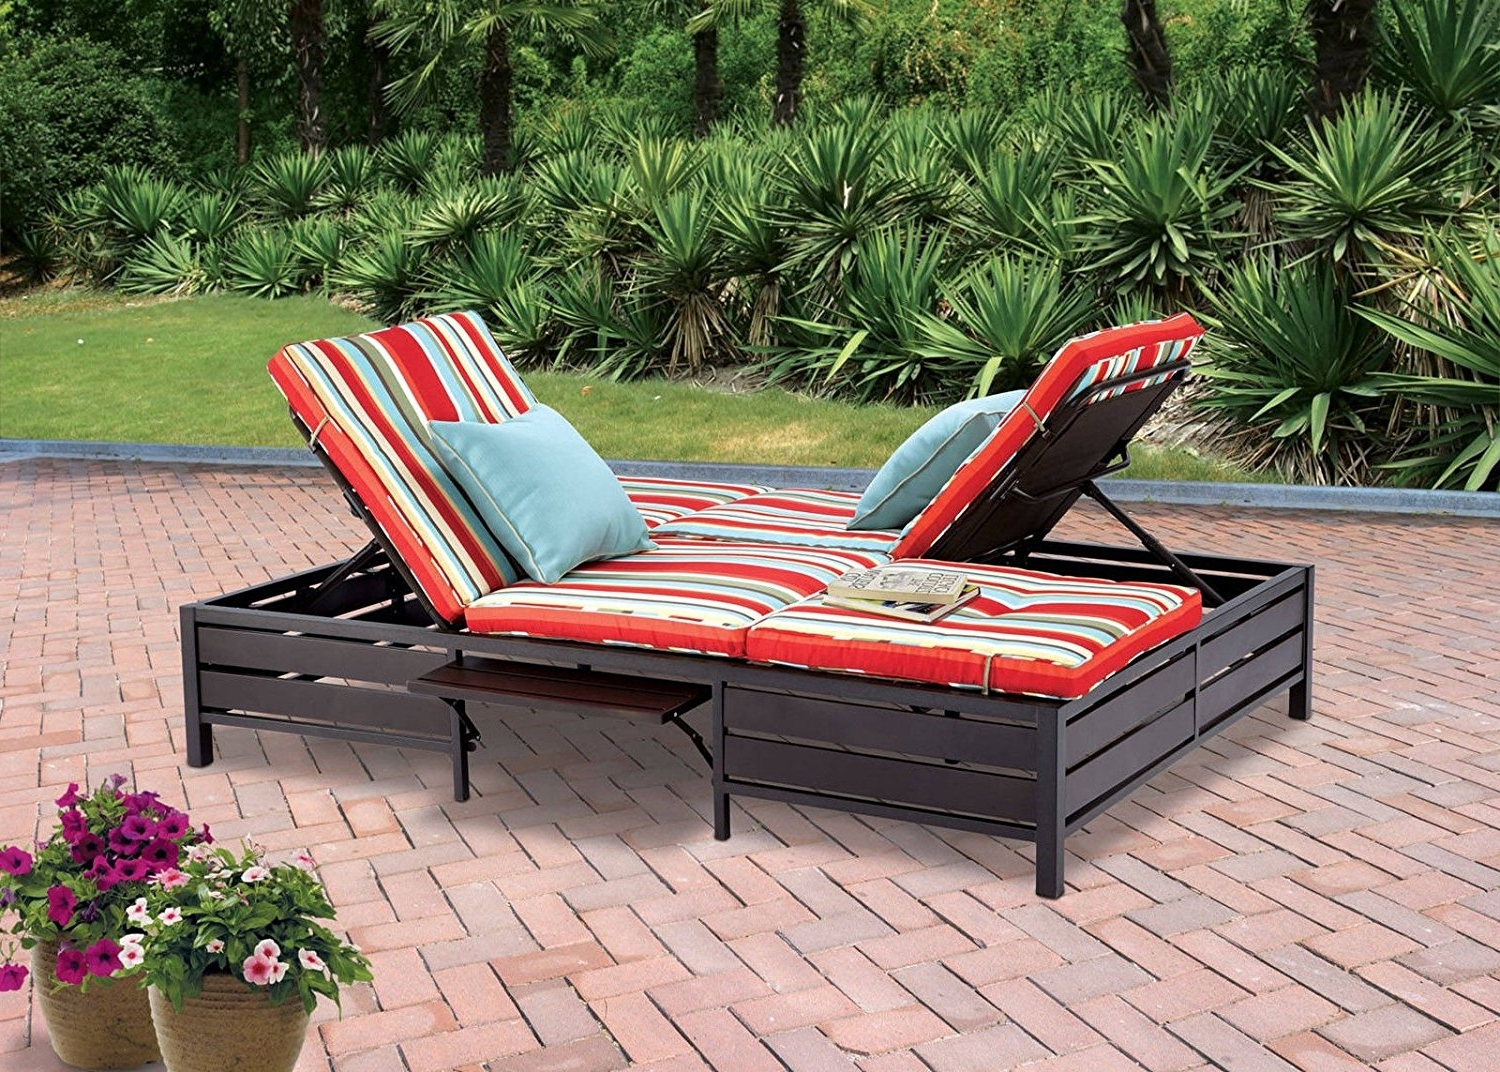 Amazon : Double Chaise Lounger – This Red Stripe Outdoor With Regard To Well Known Double Outdoor Chaise Lounges (View 4 of 15)